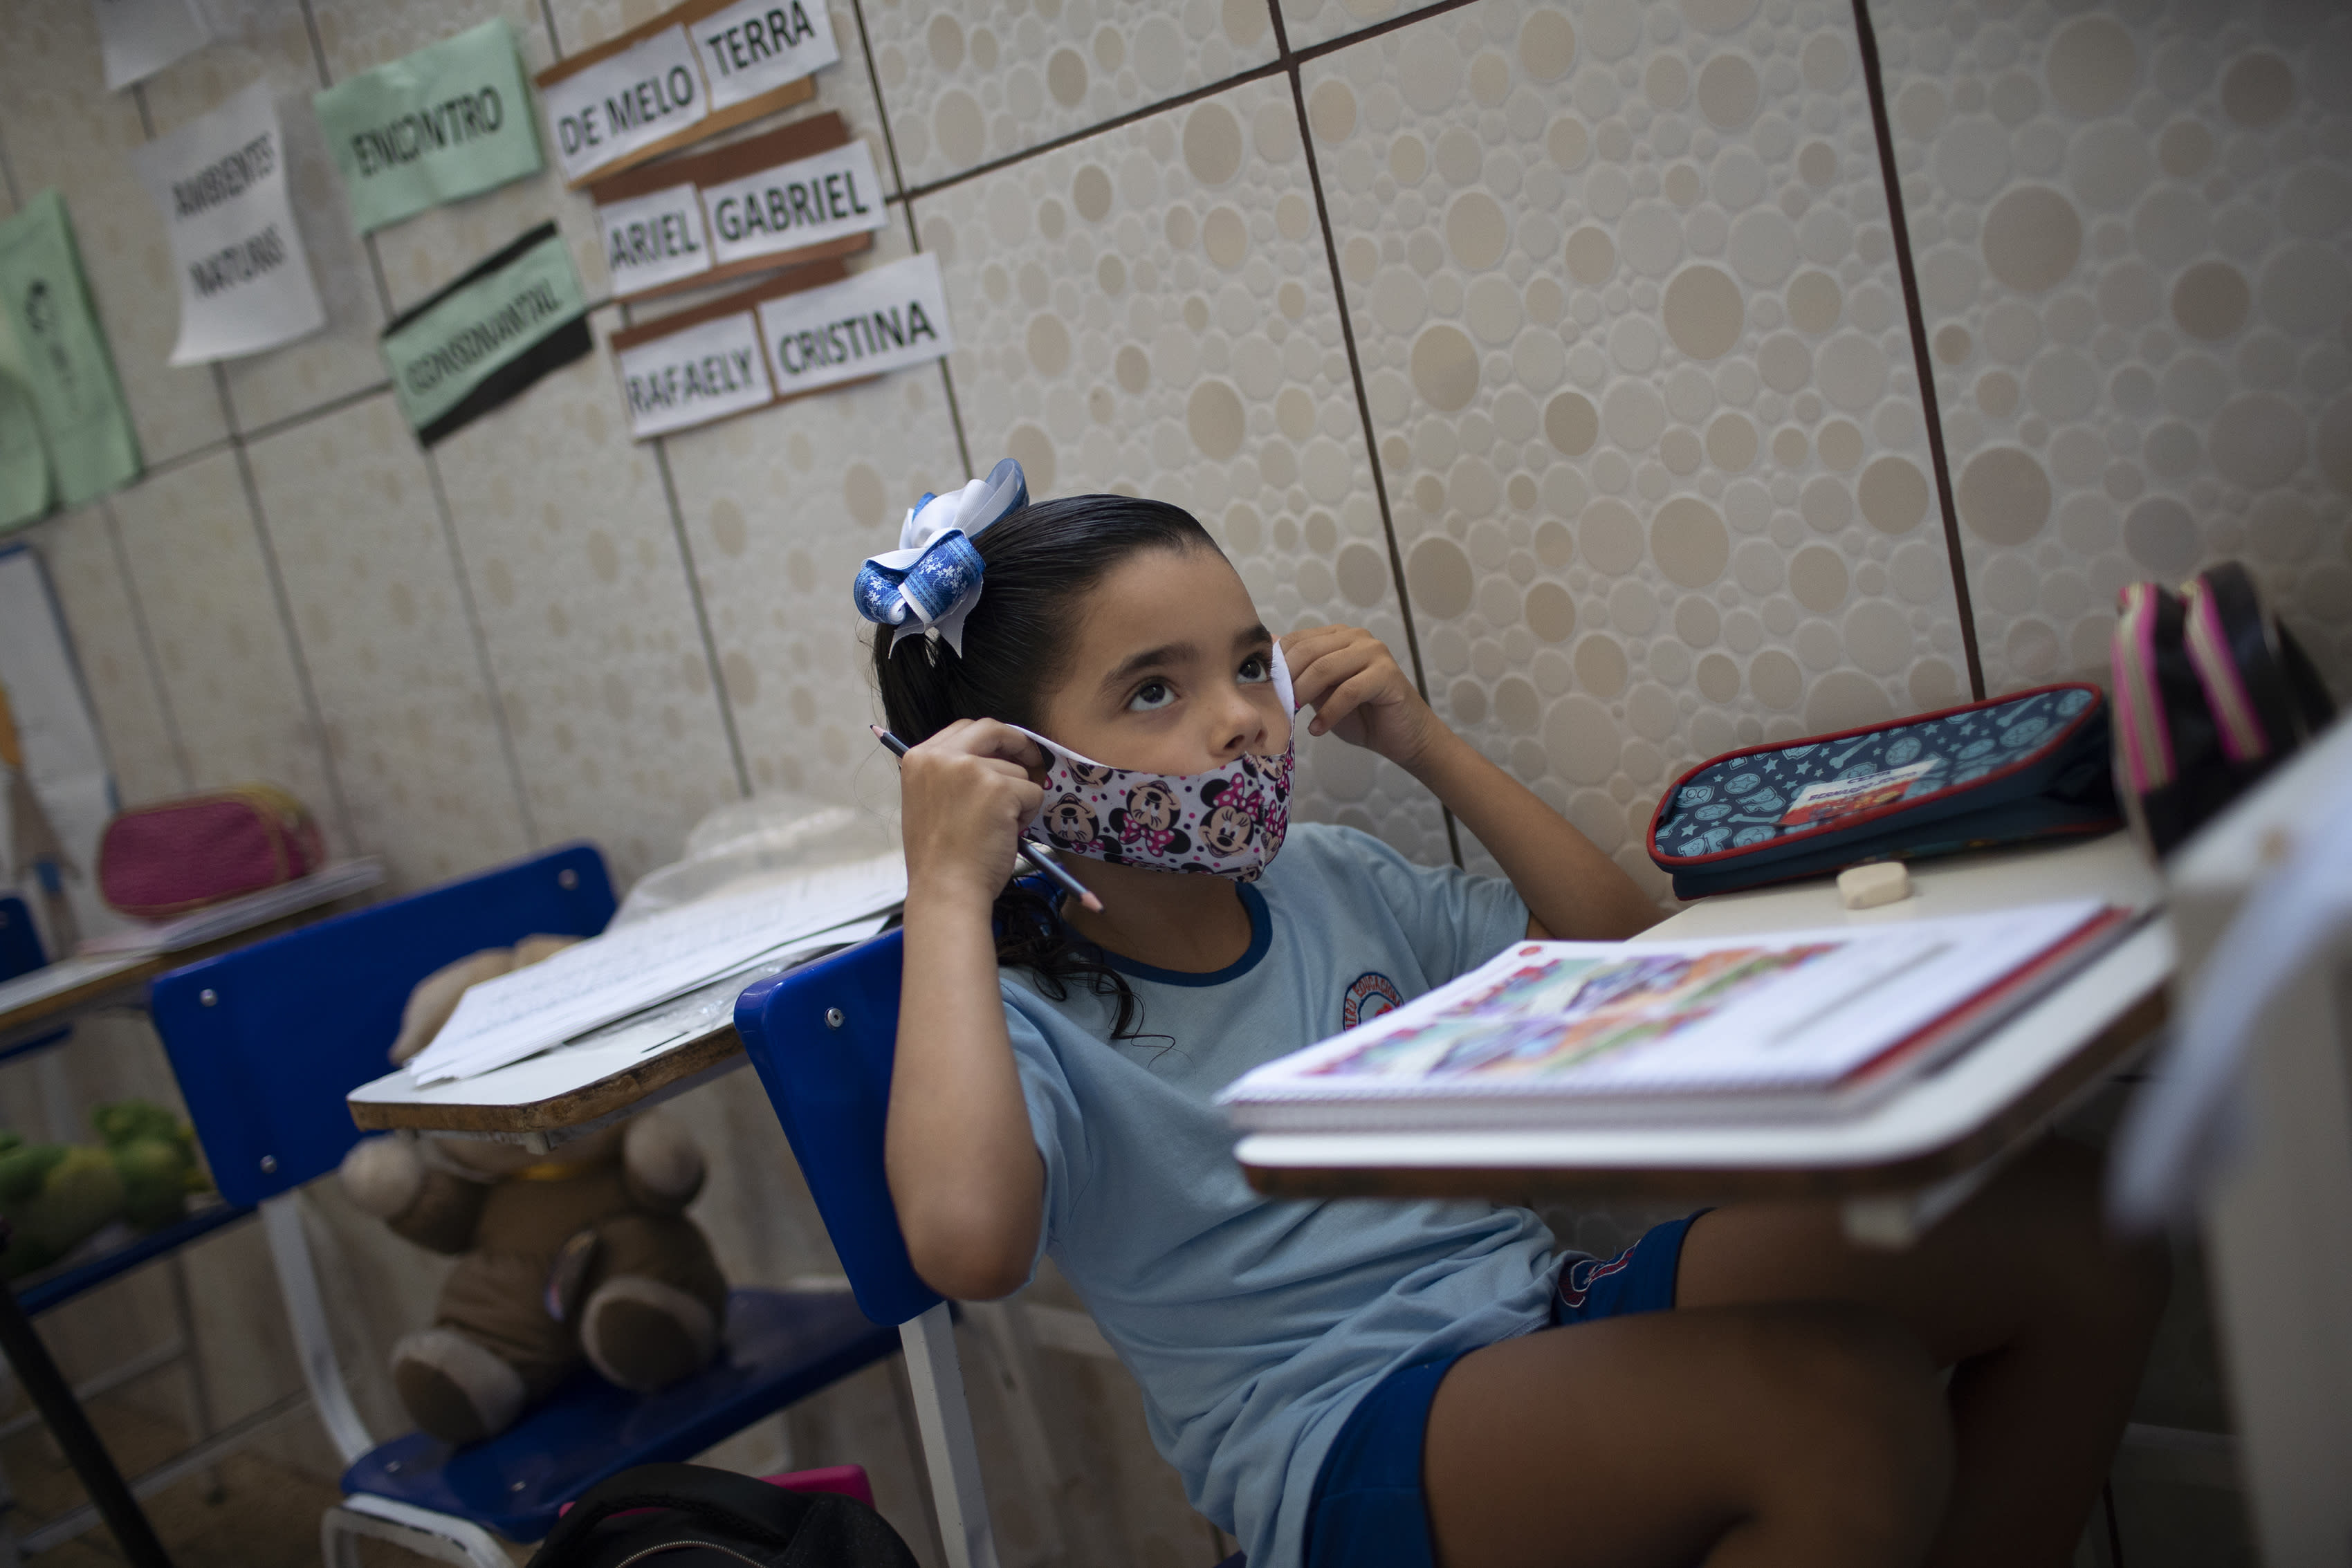 Rafaely de Melo puts on her protective mask during a class at the Pereira Agustinho daycare, nursery school and pre-school, after it reopened amid the new coronavirus pandemic in Duque de Caxias, Monday, July 6, 2020. The city of Manaus in the Amazon rainforest and Duque de Caxias in Rio de Janeiro's metropolitan region, became on Monday the first Brazilian cities to resume in-person classes at private schools since the onset of the COVID-19 pandemic, according to the nation's private school federation. (AP Photo/Silvia Izquierdo)